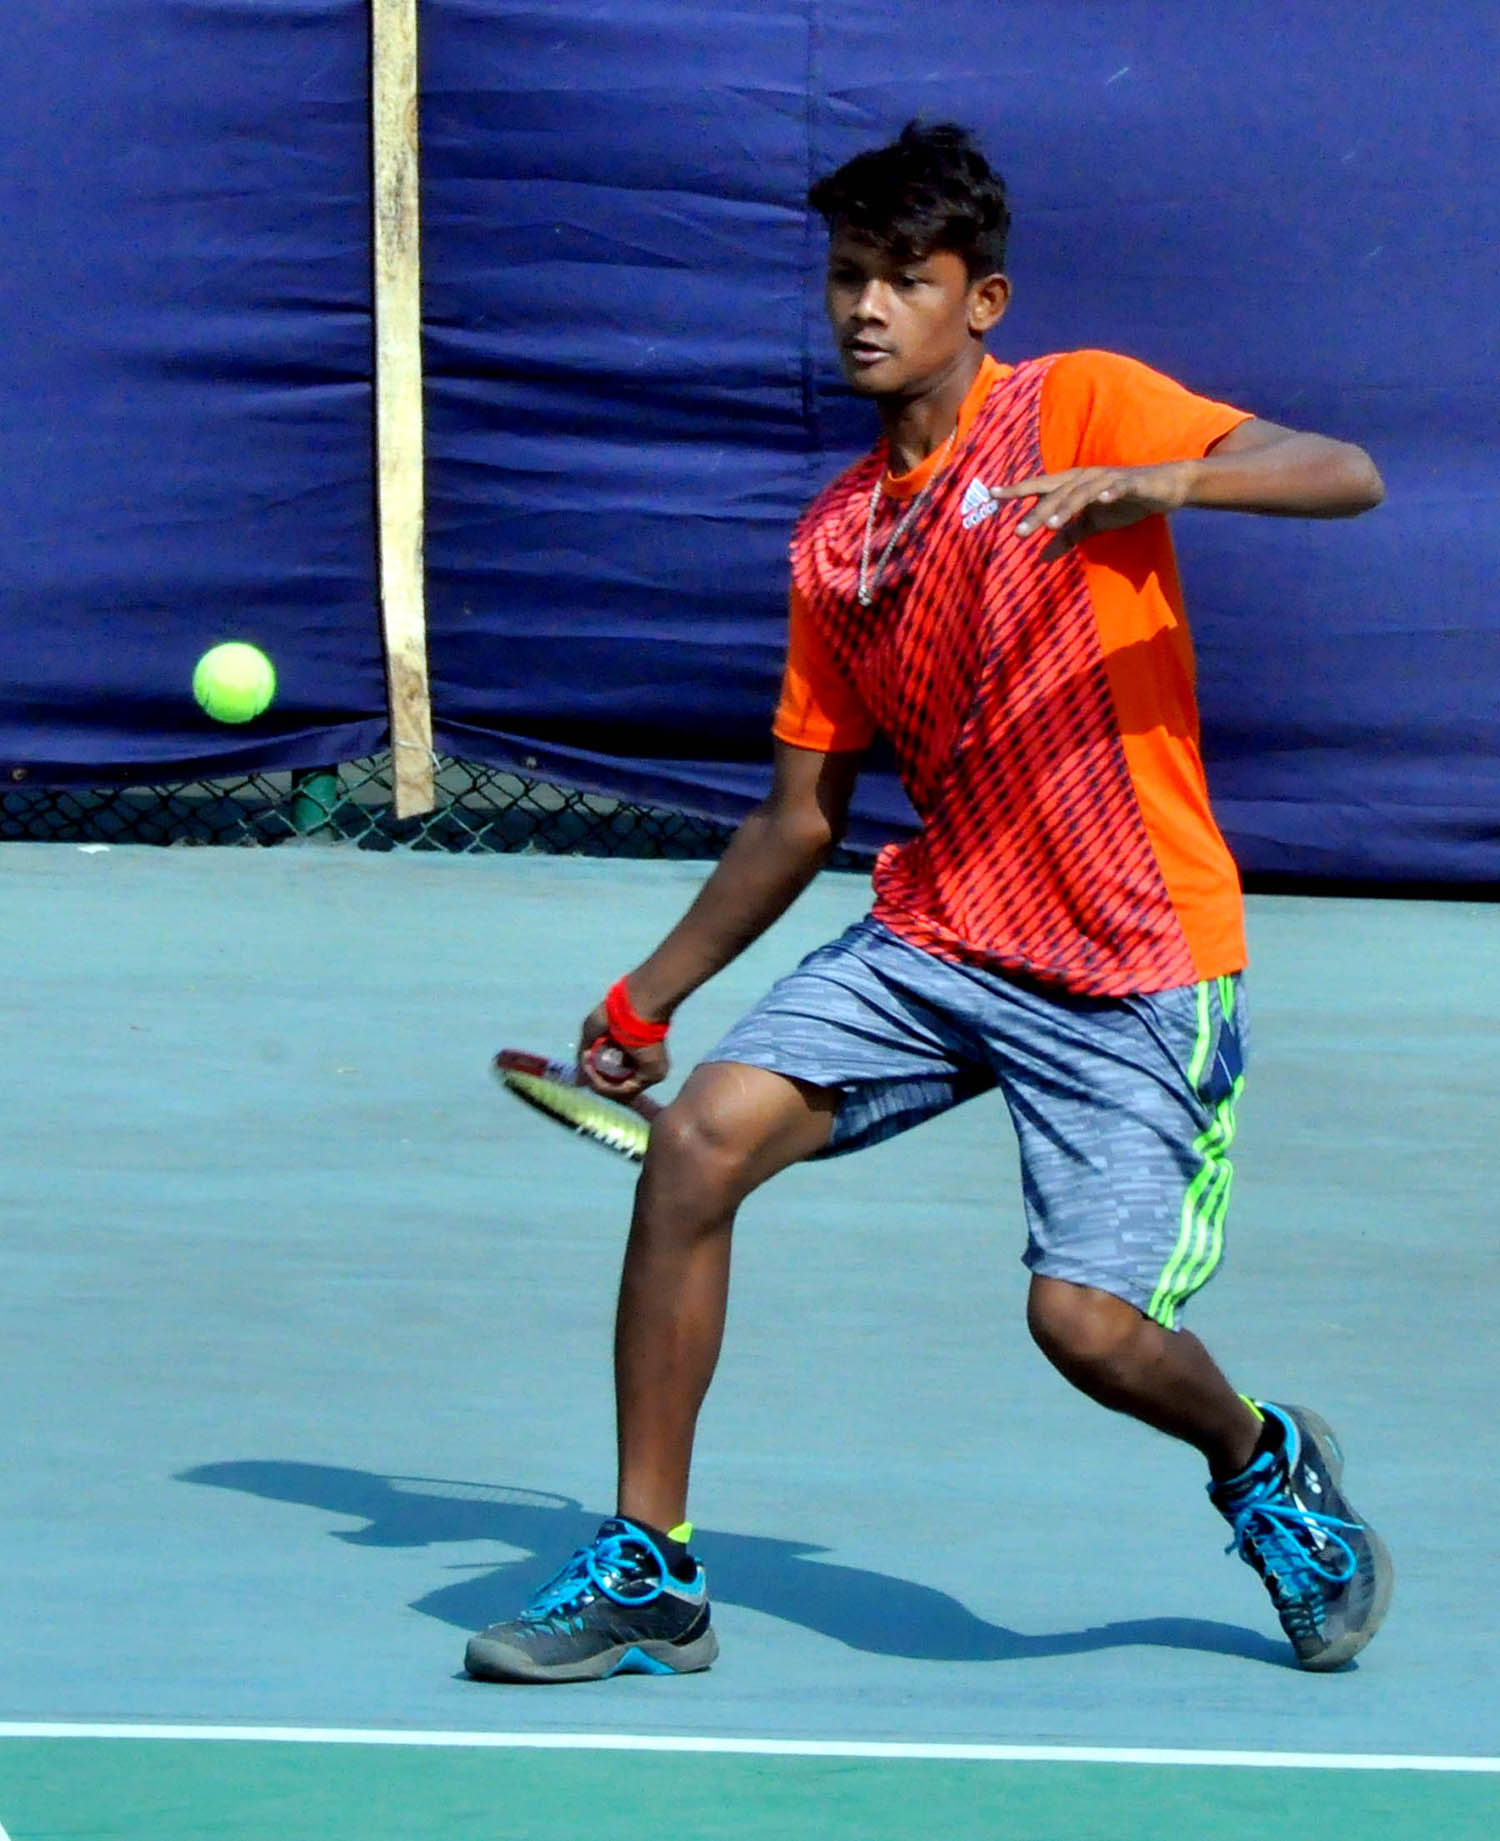 Ranjit Sarkar of Bangladesh in action during the boys' singles match of the Bengal Plastic Asian Under-14 Series Tennis Championship at the National Tennis Complex in the city's Ramna on Wednesday.